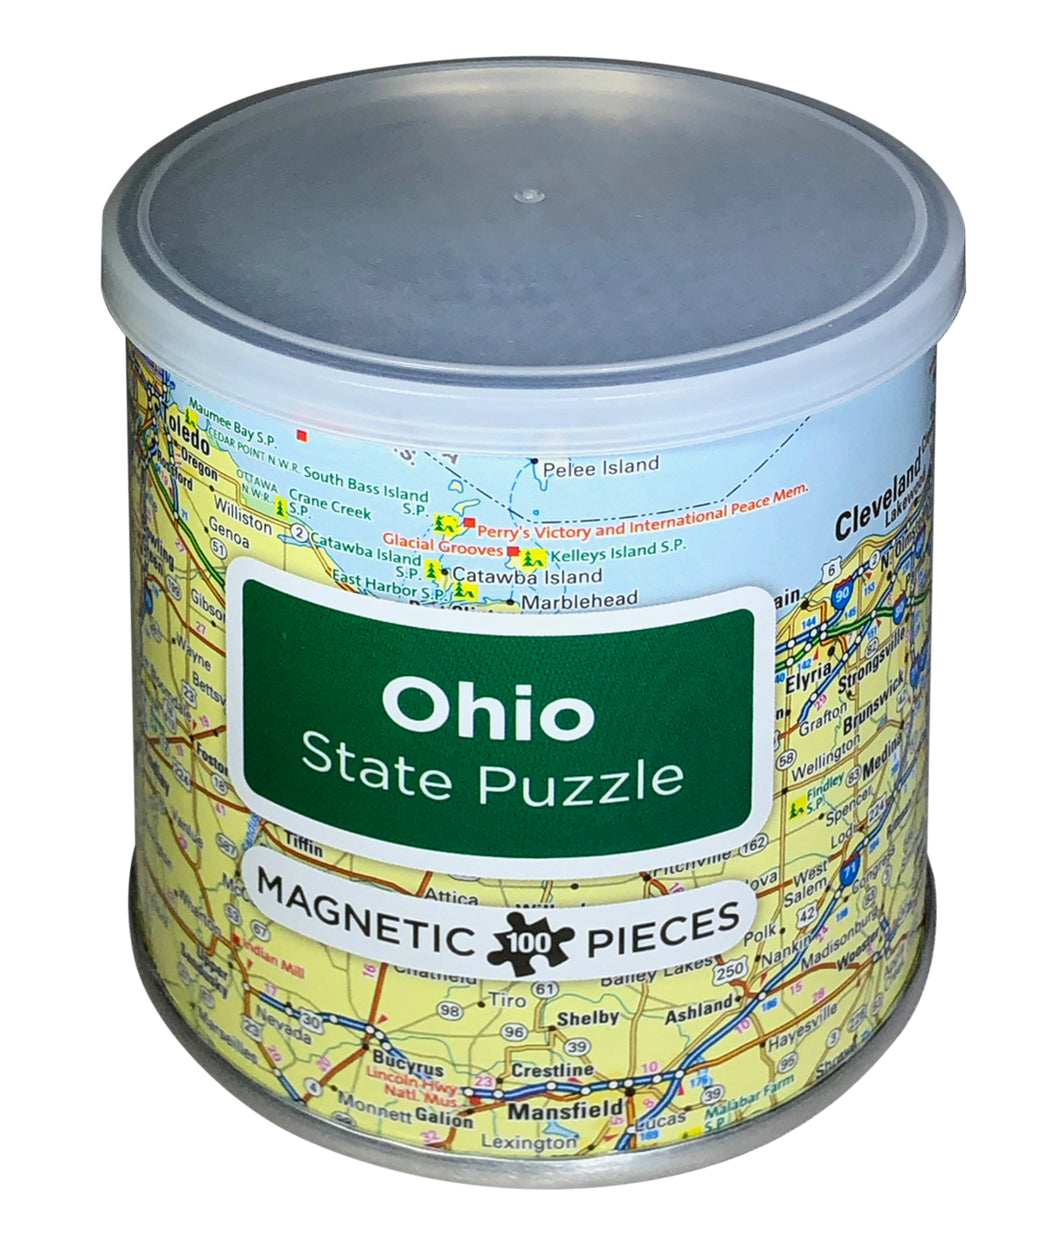 100 Piece Magnetic Puzzle - Ohio